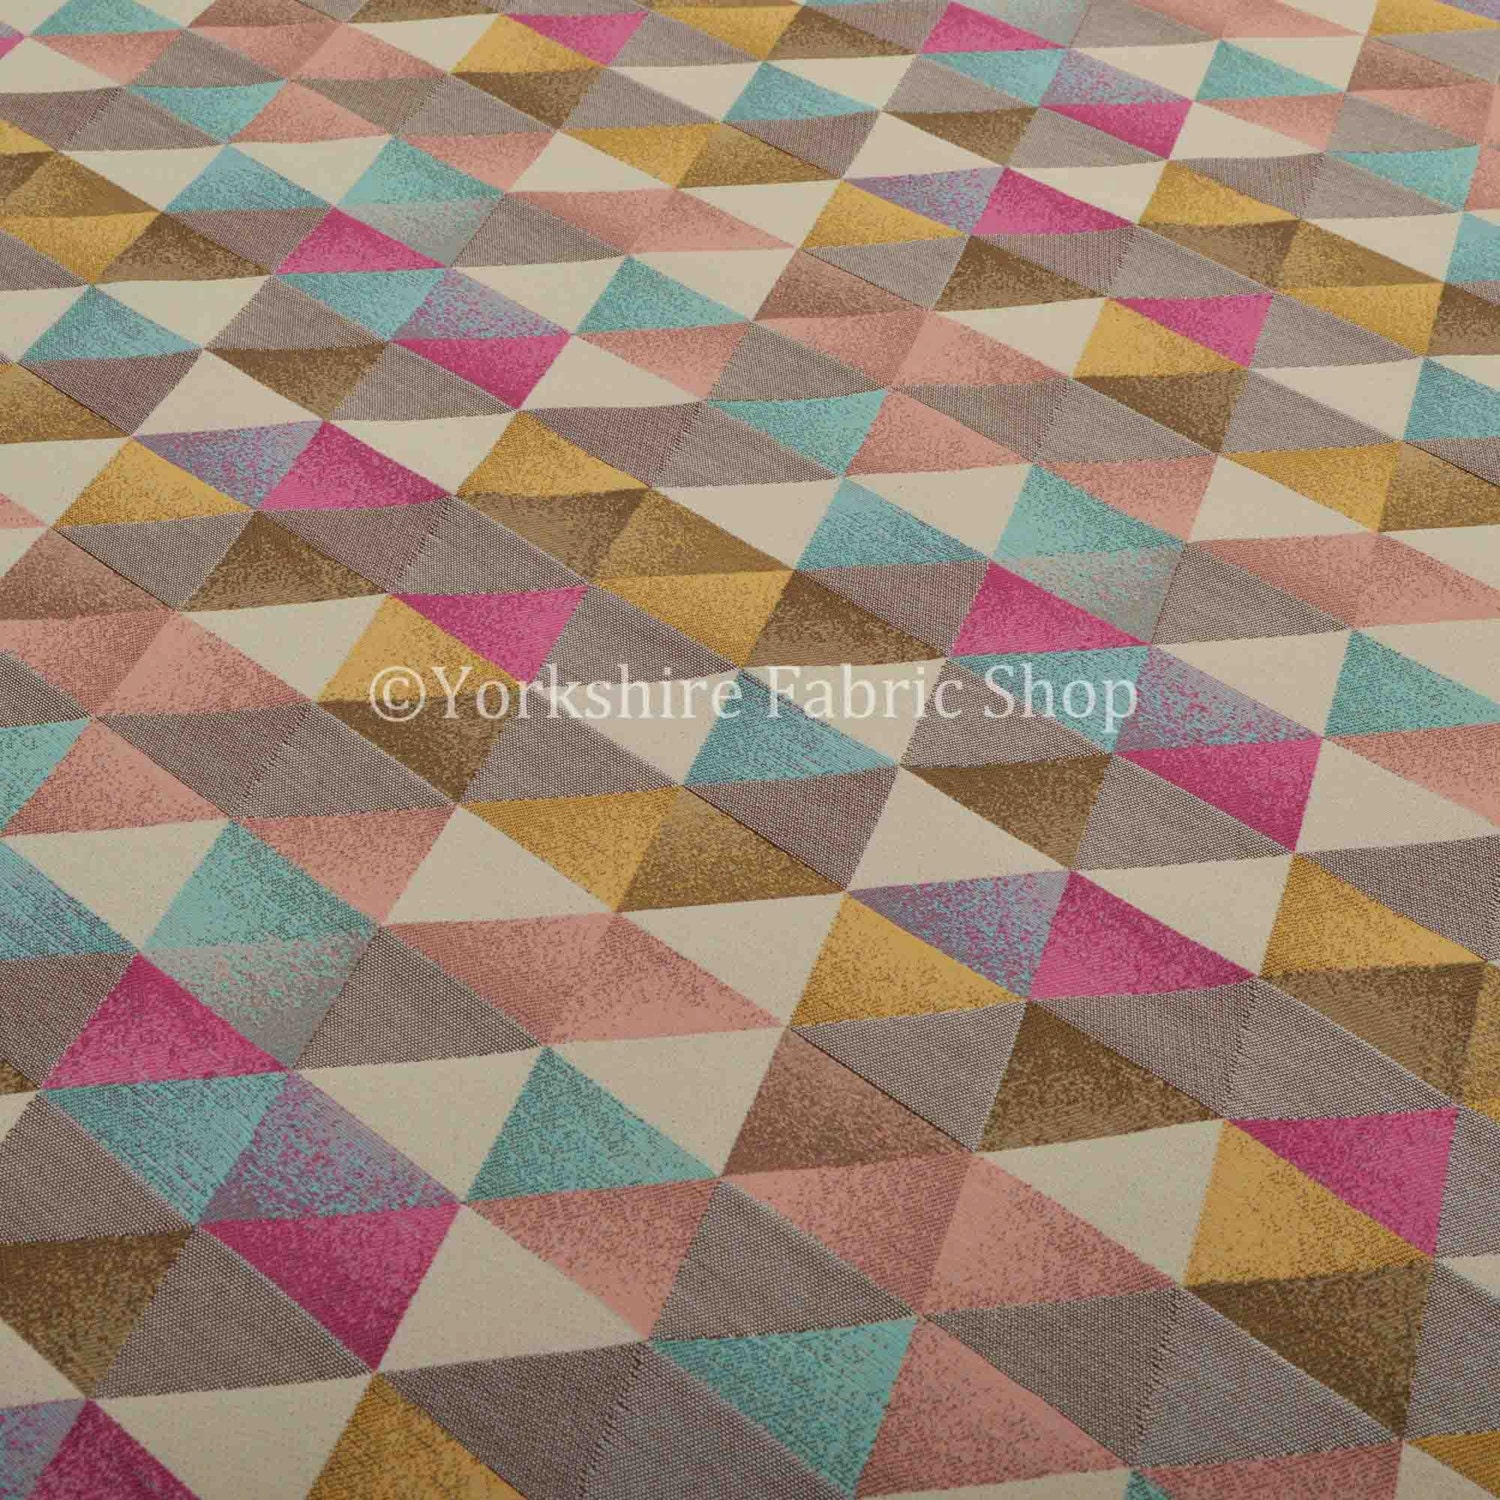 Metres Of Soft Woven Jacquard Chenille Upholstery Fabric - Chenille upholstery fabric